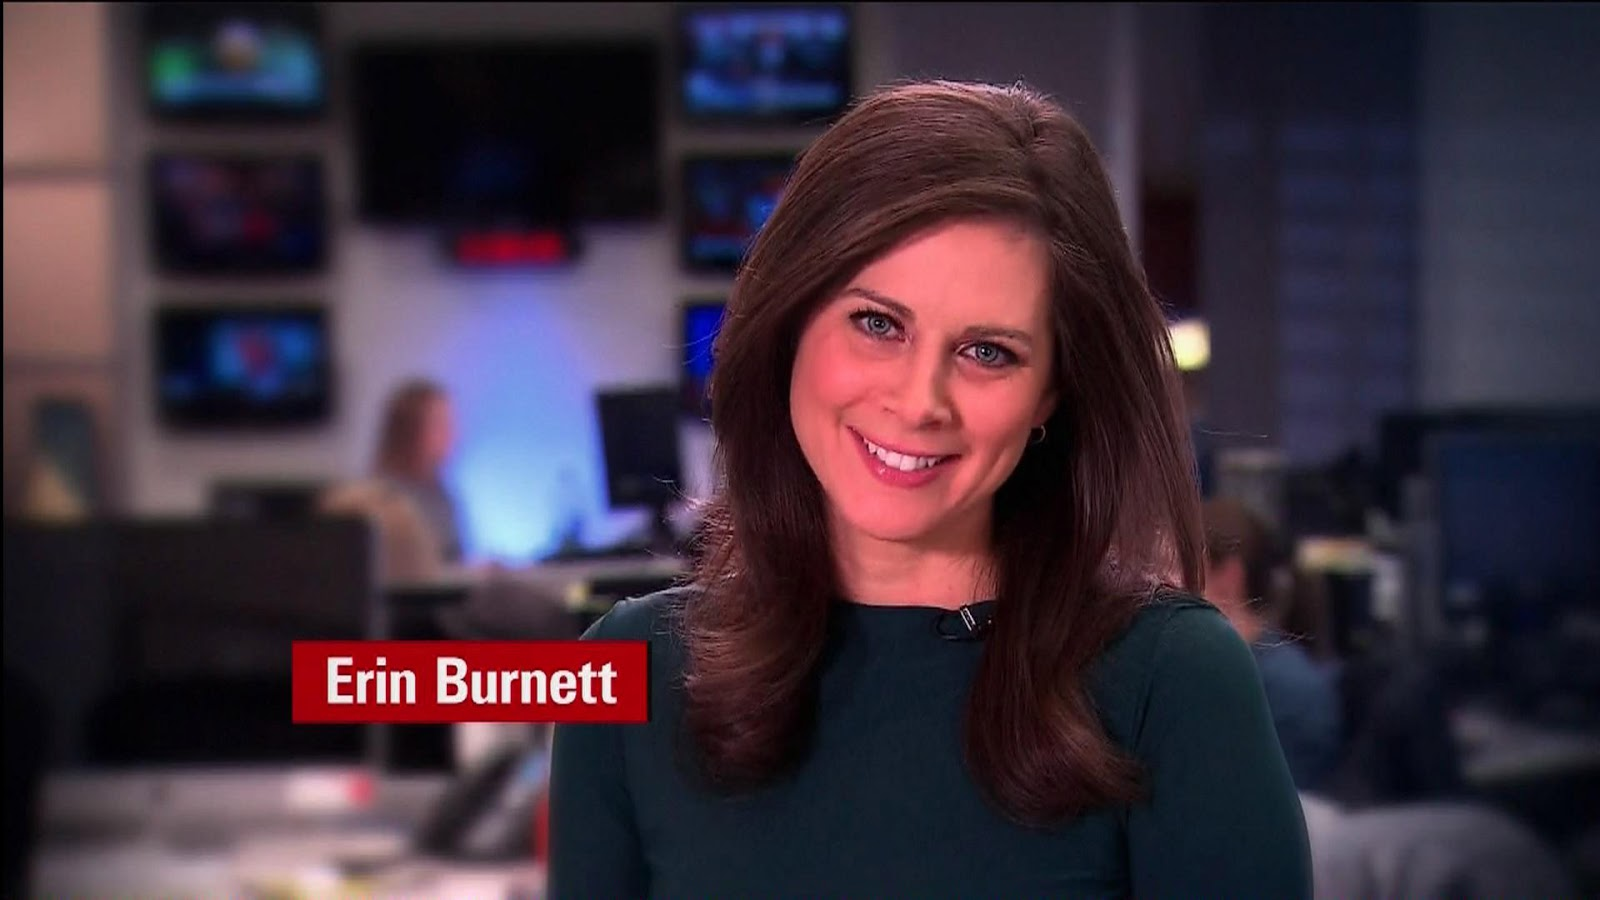 erin burnett hot